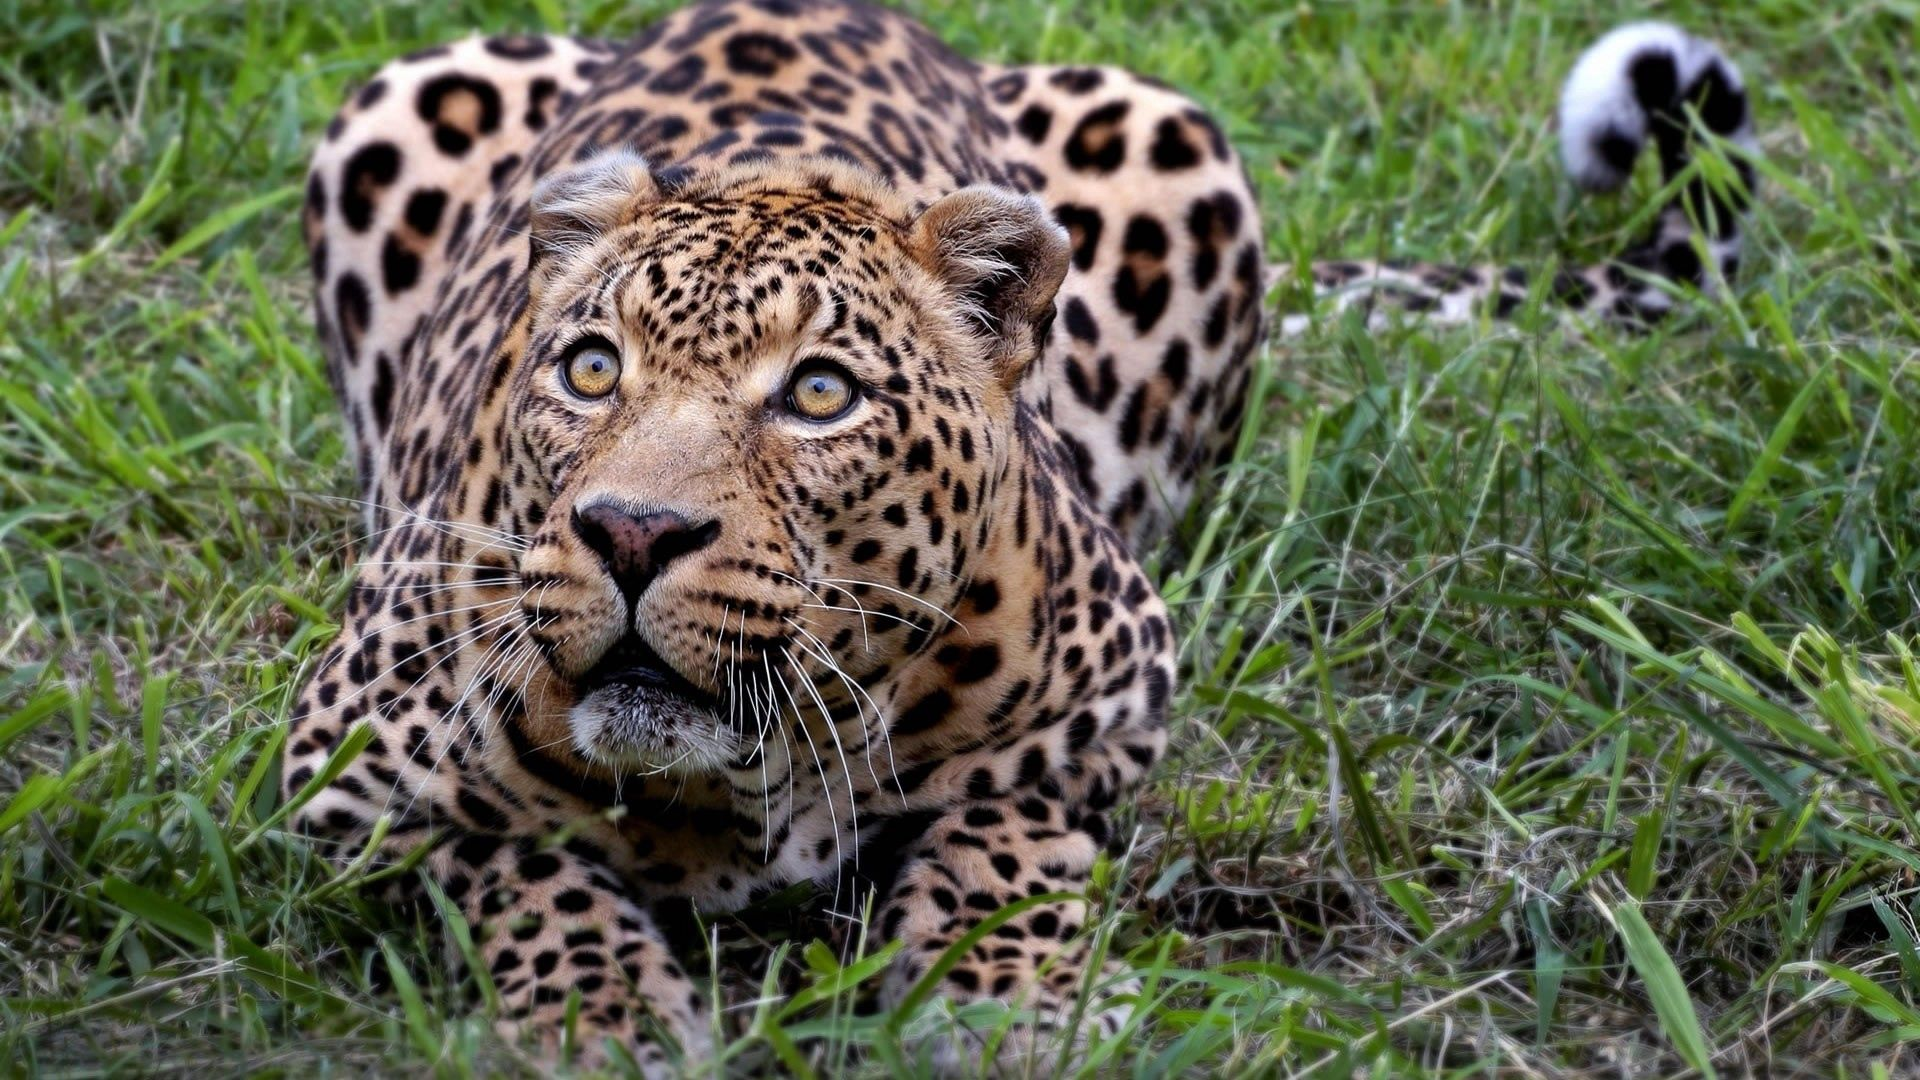 92953 download wallpaper Animals, Leopard, Grass, Fear, Misgiving, Squat, Cower, Hunting, Hunt screensavers and pictures for free